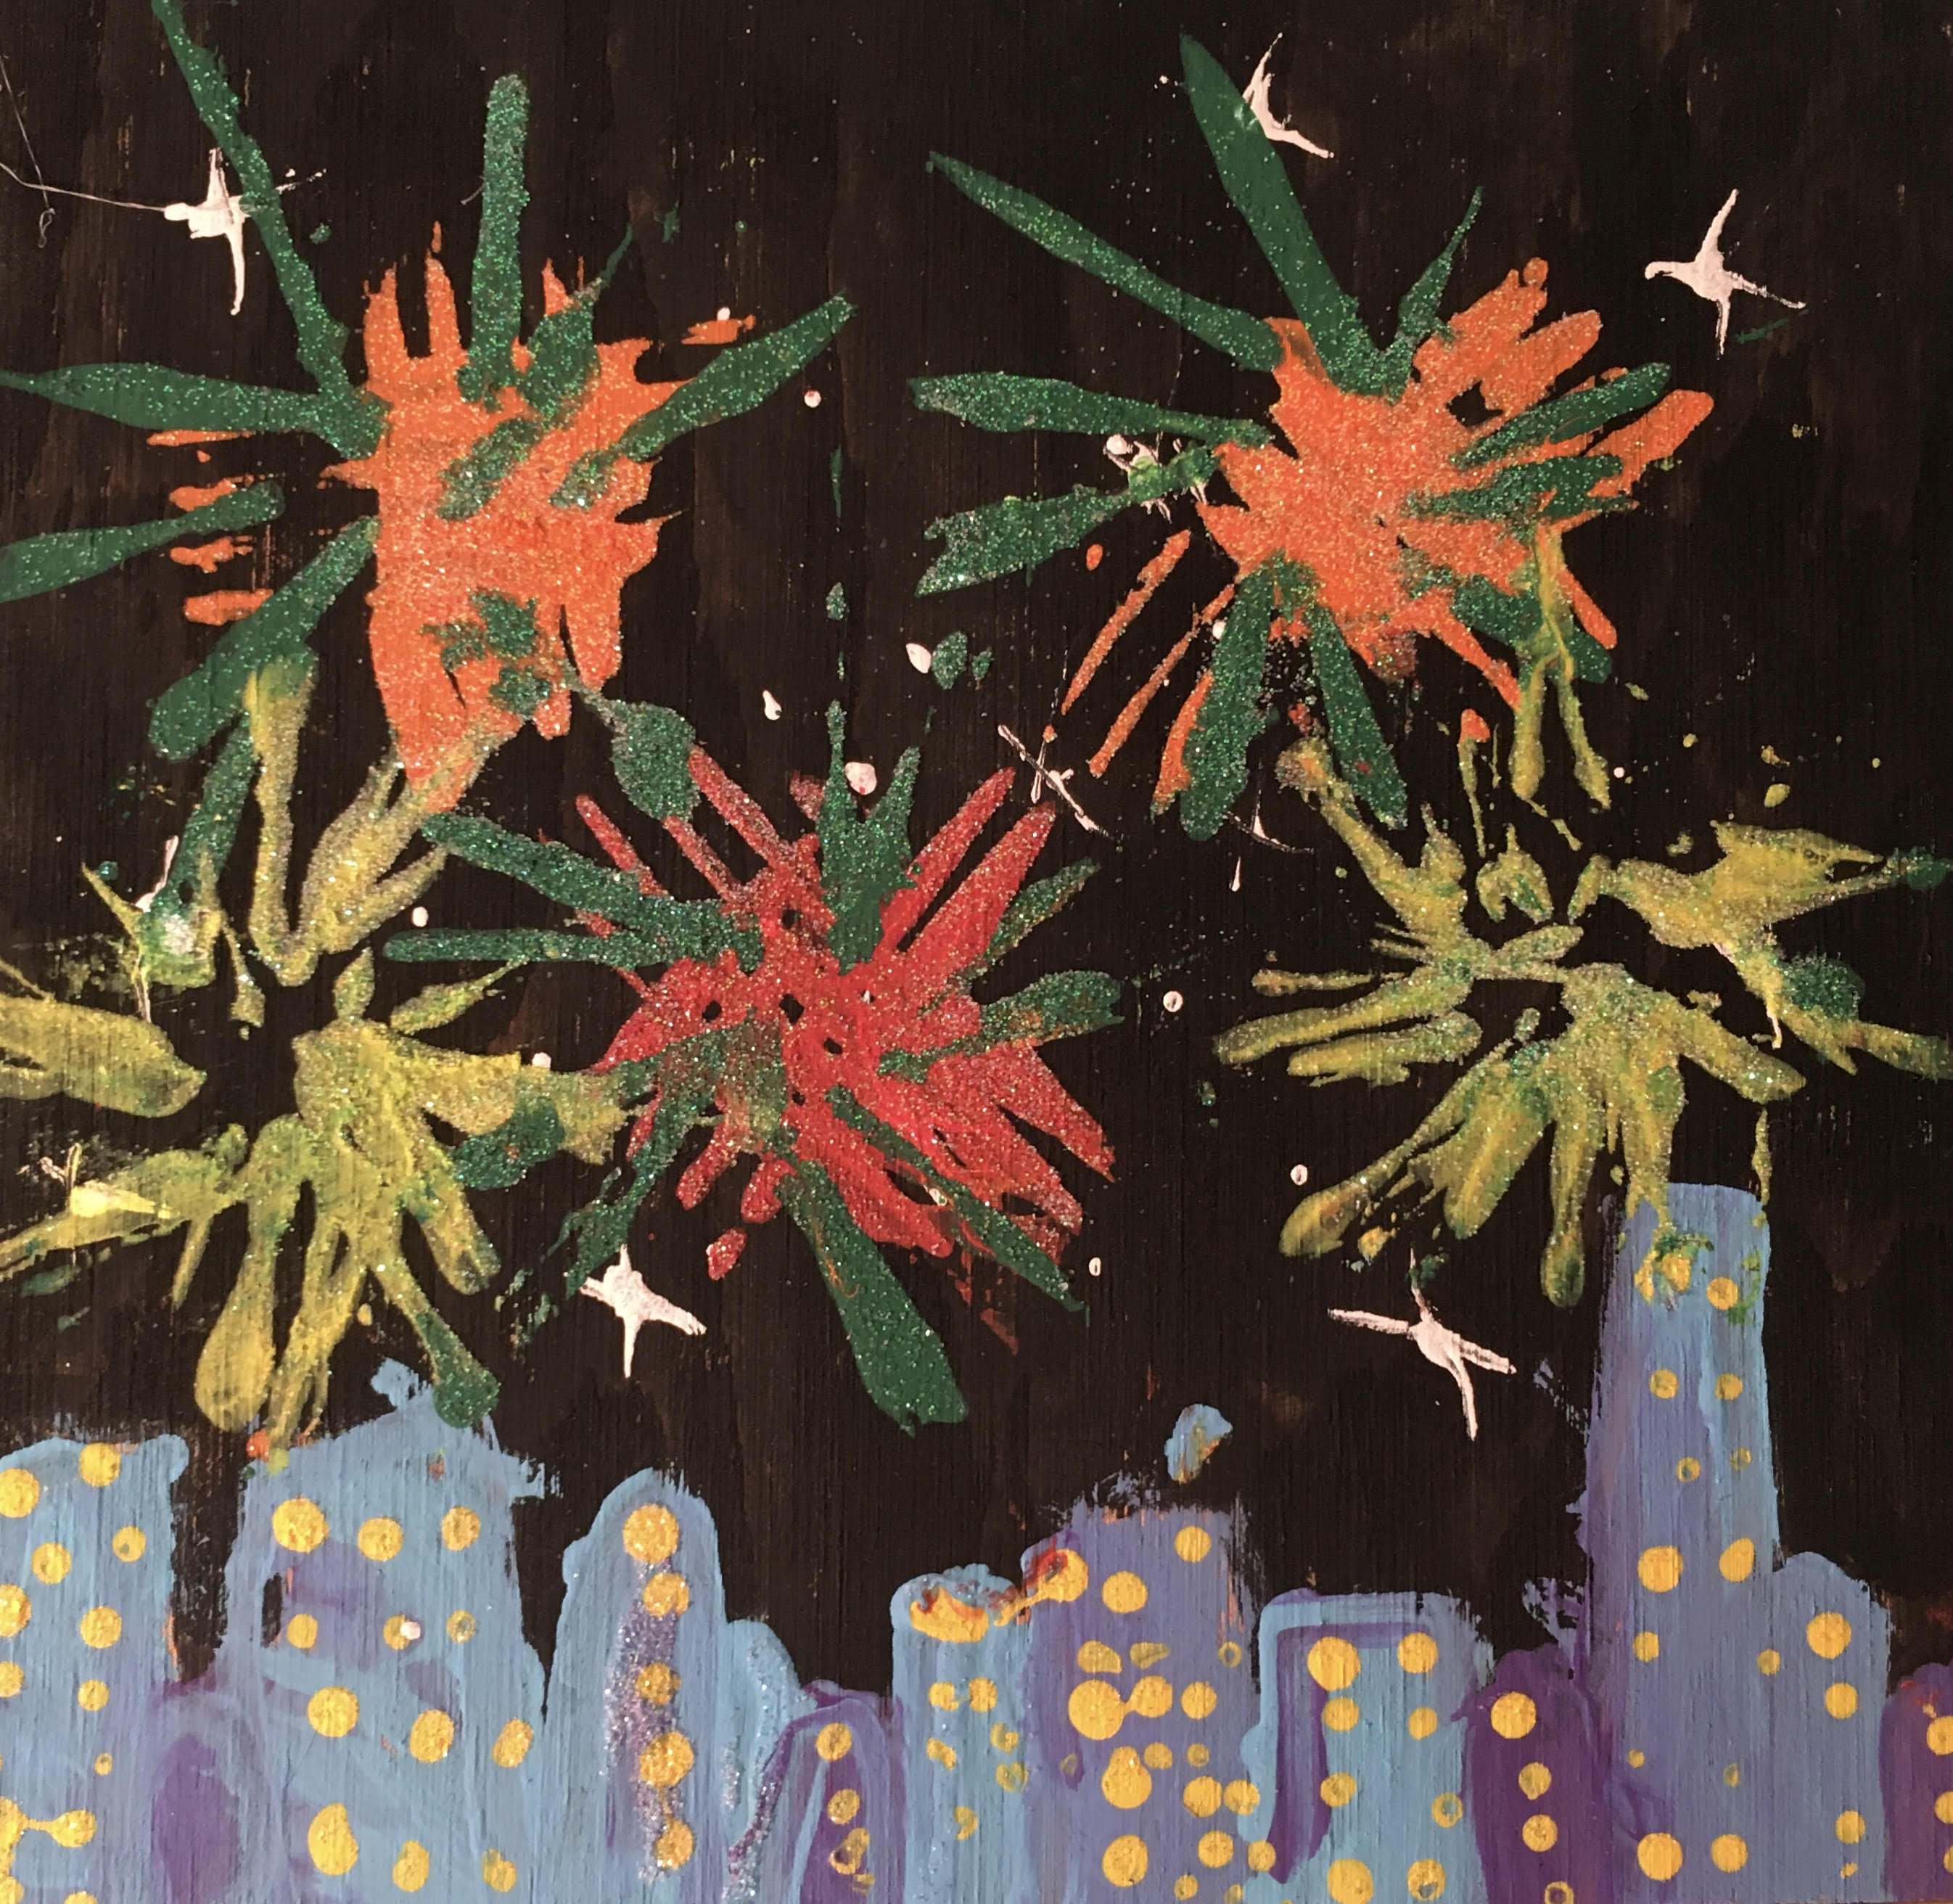 Fireworks by Natalie Montes